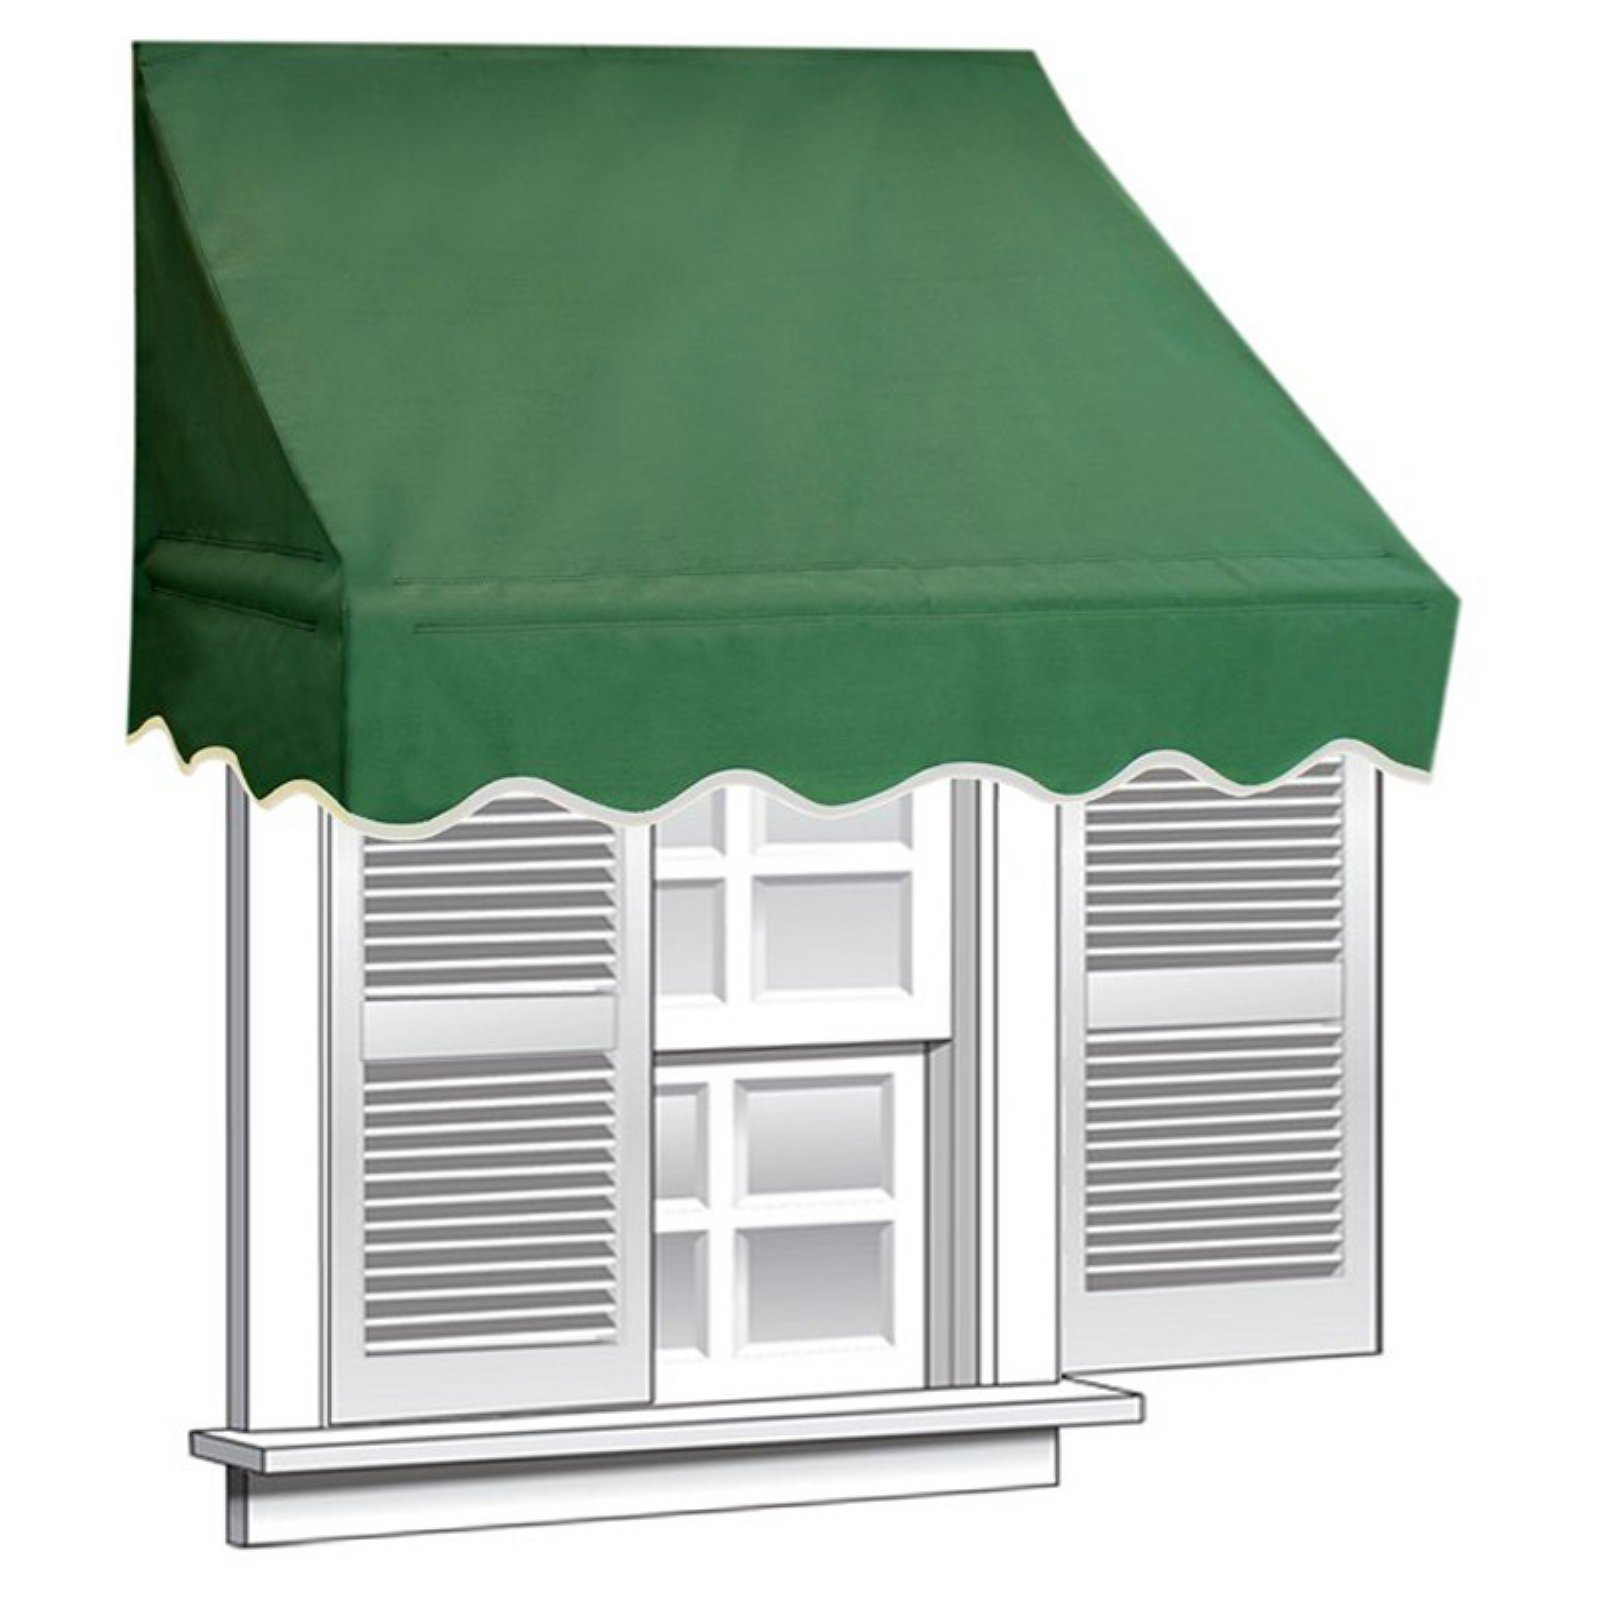 ALEKO 8' x 2' Window Awning Door Canopy (16 sq. ft Coverage), Green Color